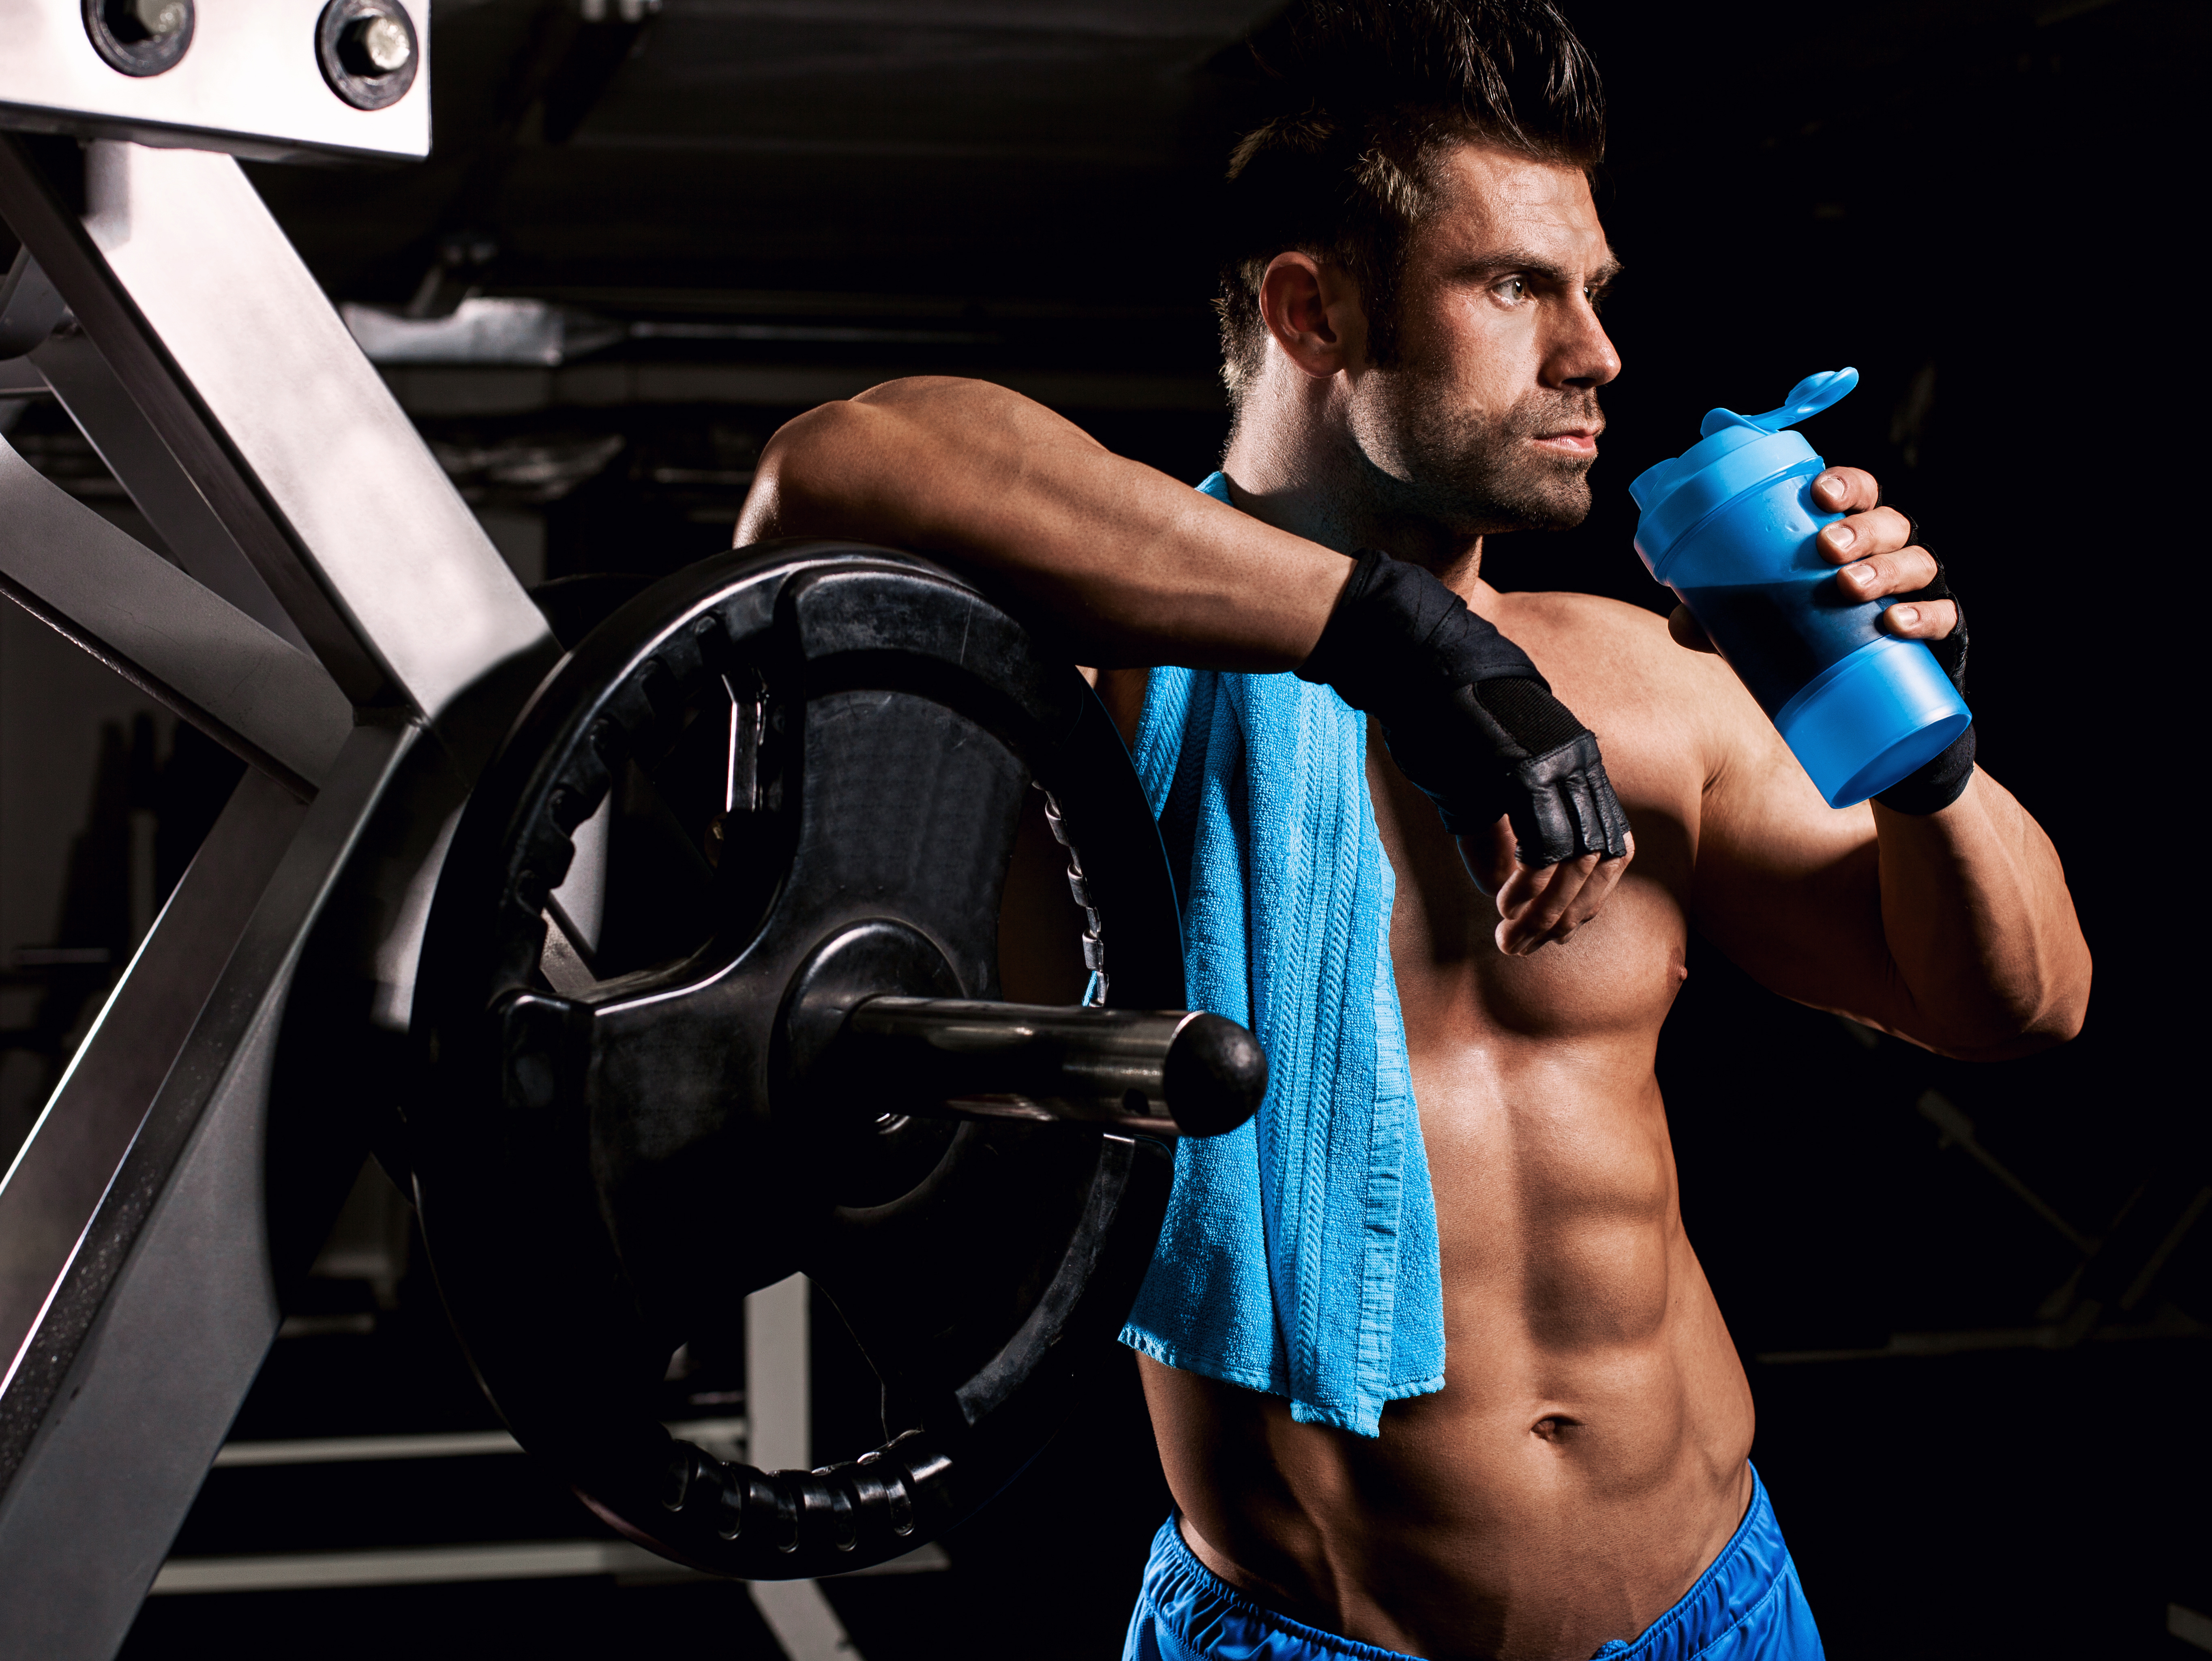 131 fitness hd wallpapers background images wallpaper abyss